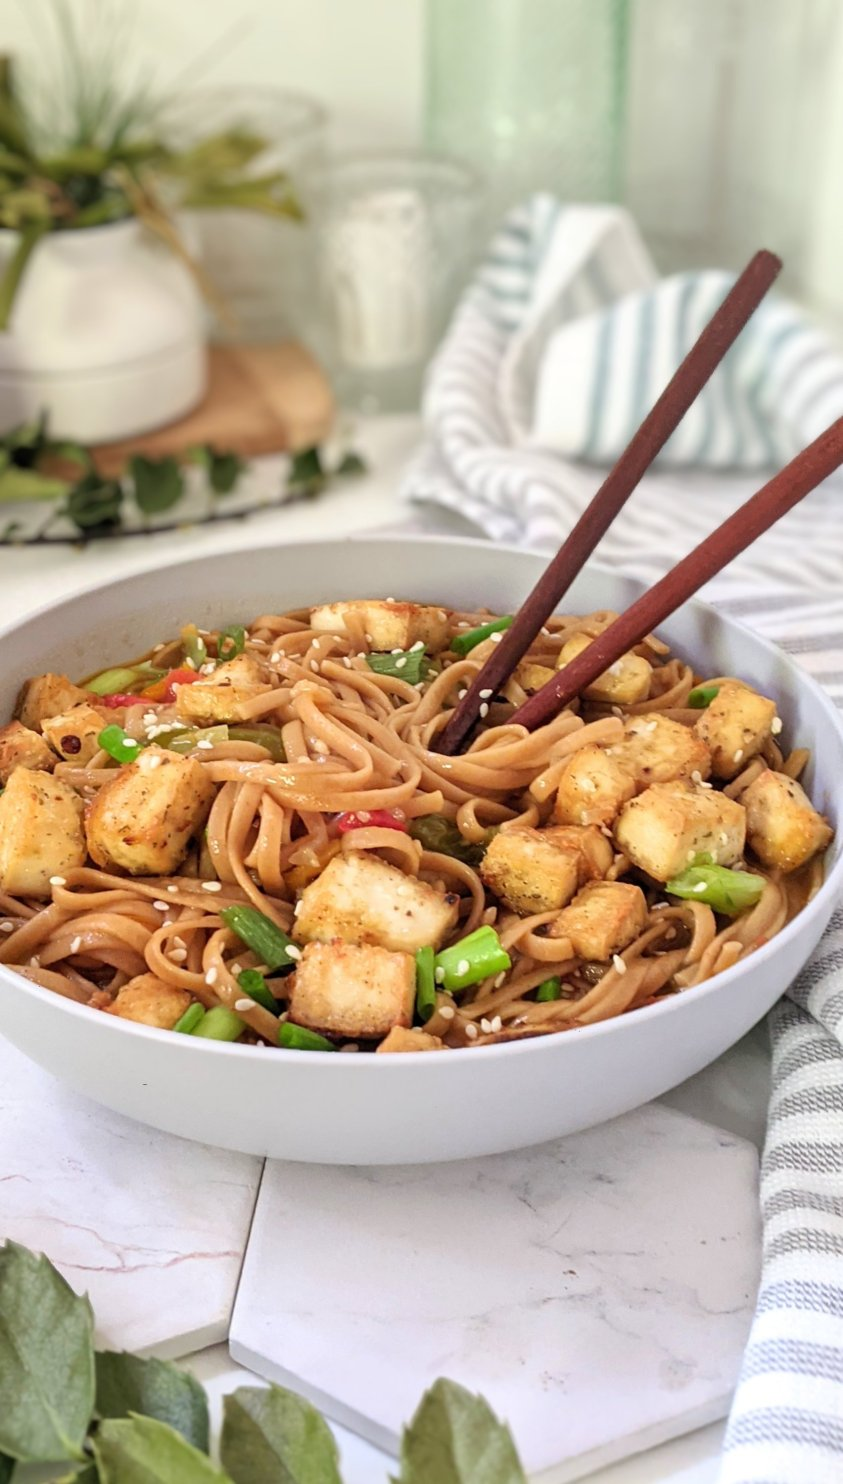 gluten free sticky garlic noodles vegetarian recipes with rice noodles dinner ideas stir fry tofu noodles sesame oil plant based asian dinner recipe ideas